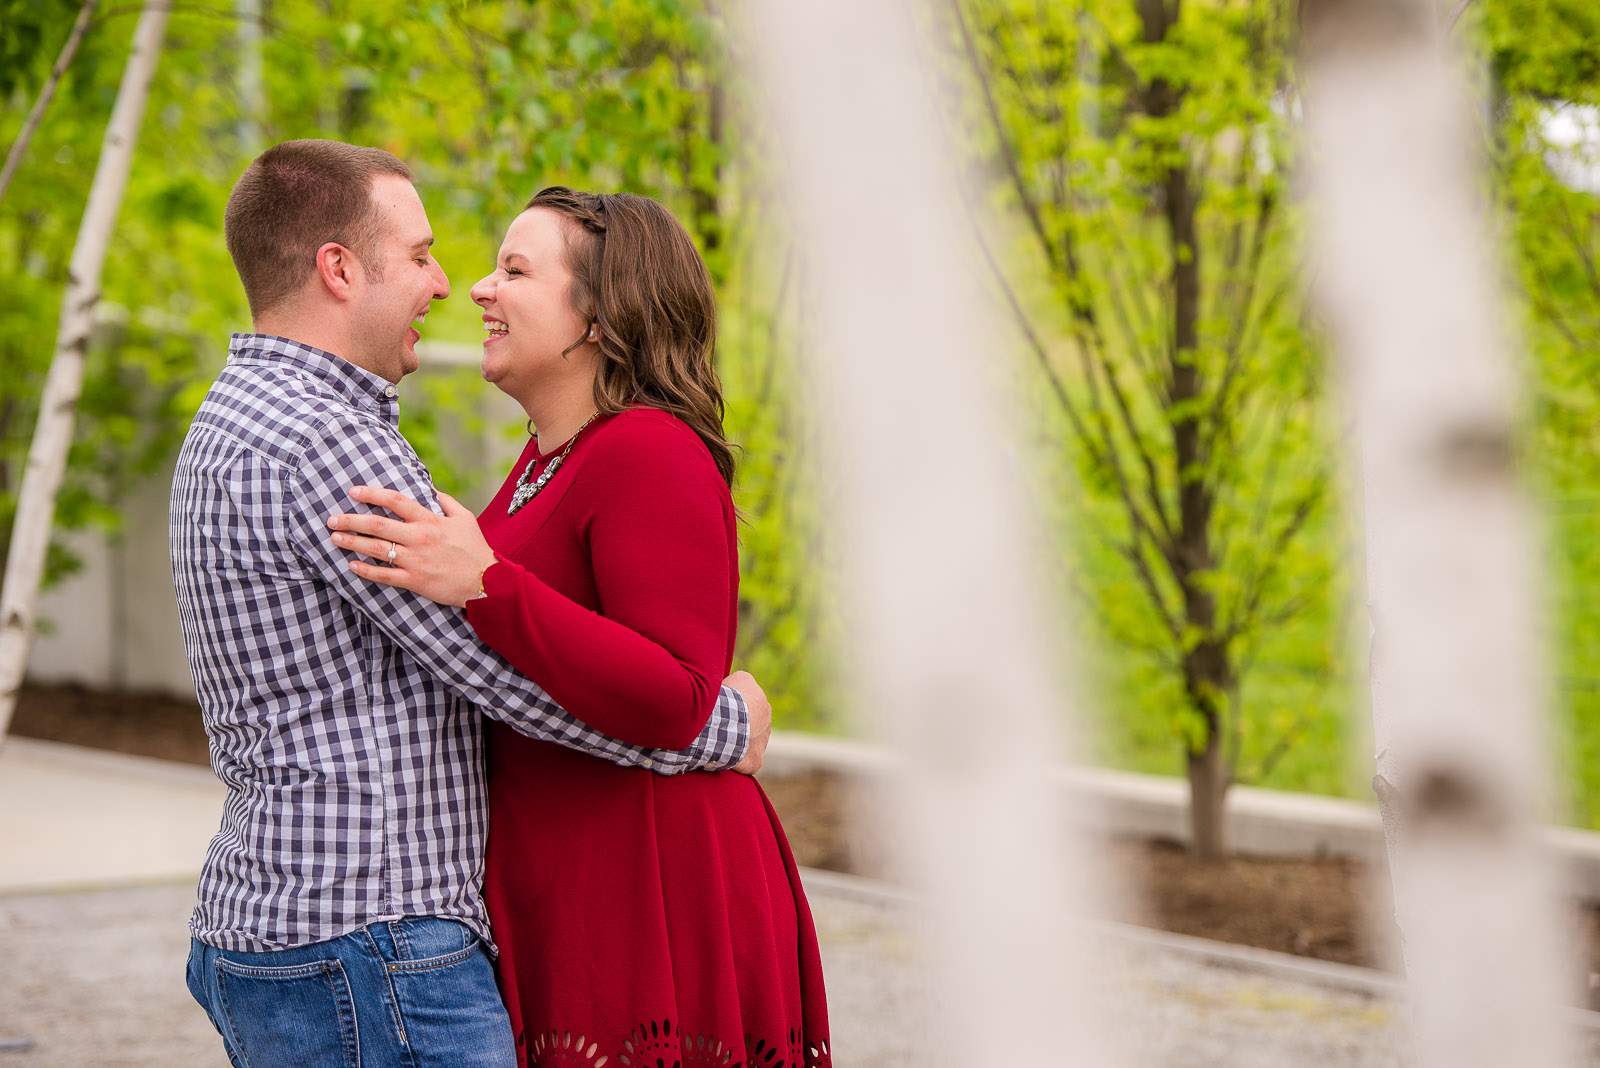 Eric_and_Christy_Photography_Blog_Stacey_Geoff_Engagement-12